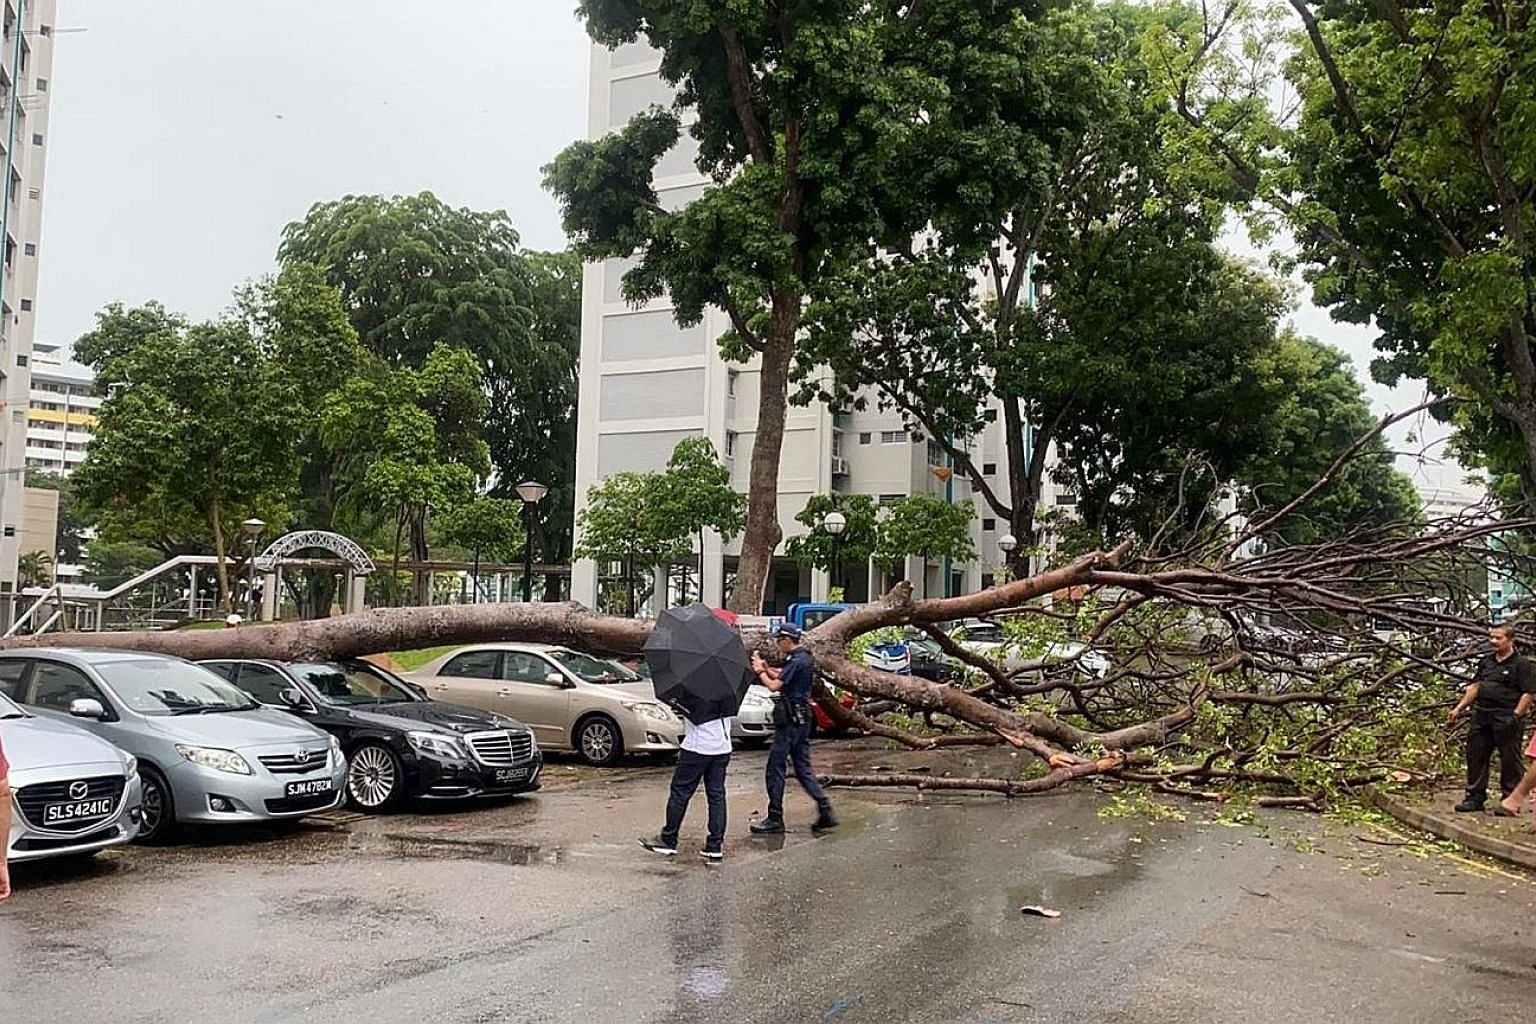 Heavy rain and strong winds hit parts of Singapore yesterday, stalling traffic and causing a tree to fall on a parked car. The incident in a Bedok North housing estate drew a crowd with their camera phones, said supermarket manager Joel Mabeo, 35, pa